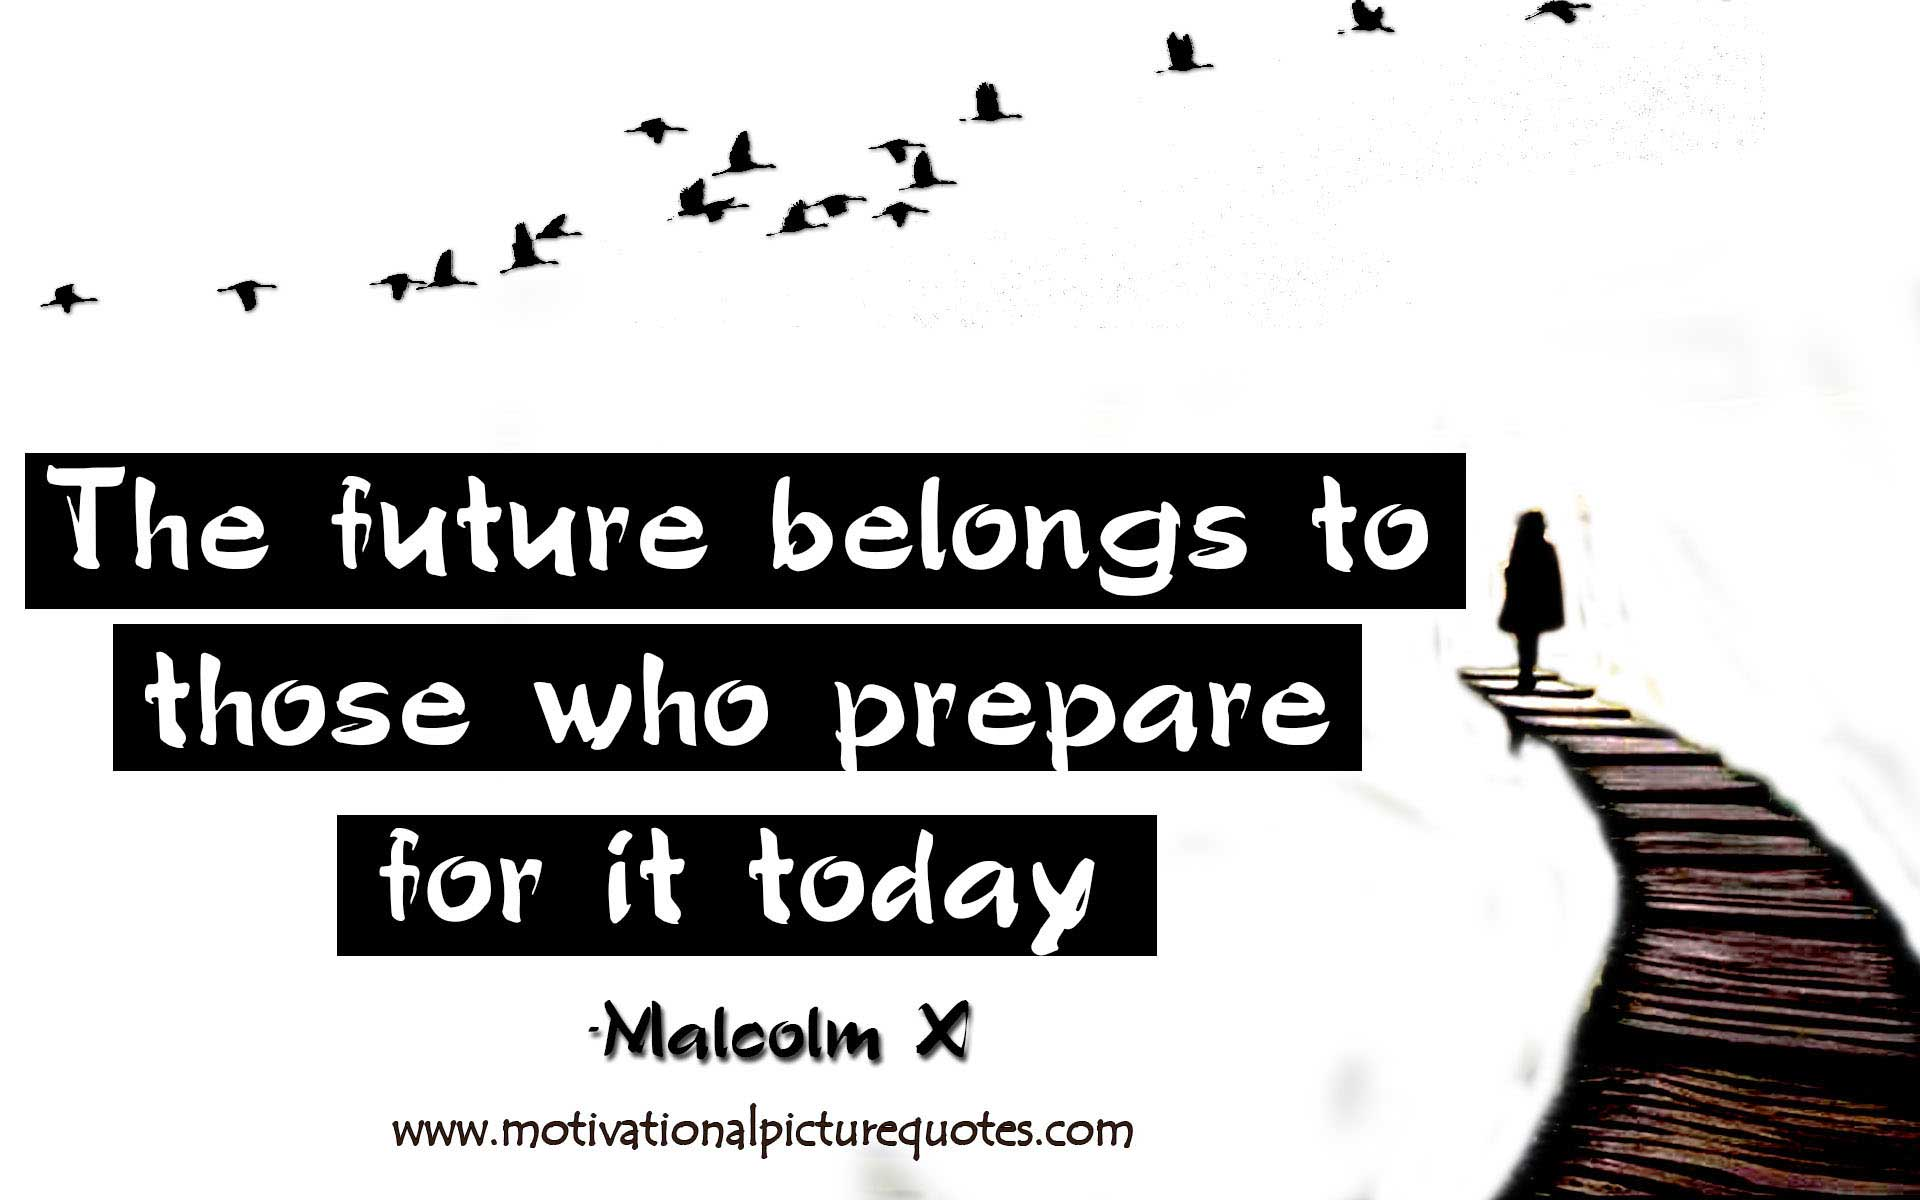 Inspirational Quotes Positive Future Inspirational Quotes About The Future Quotesgram Future